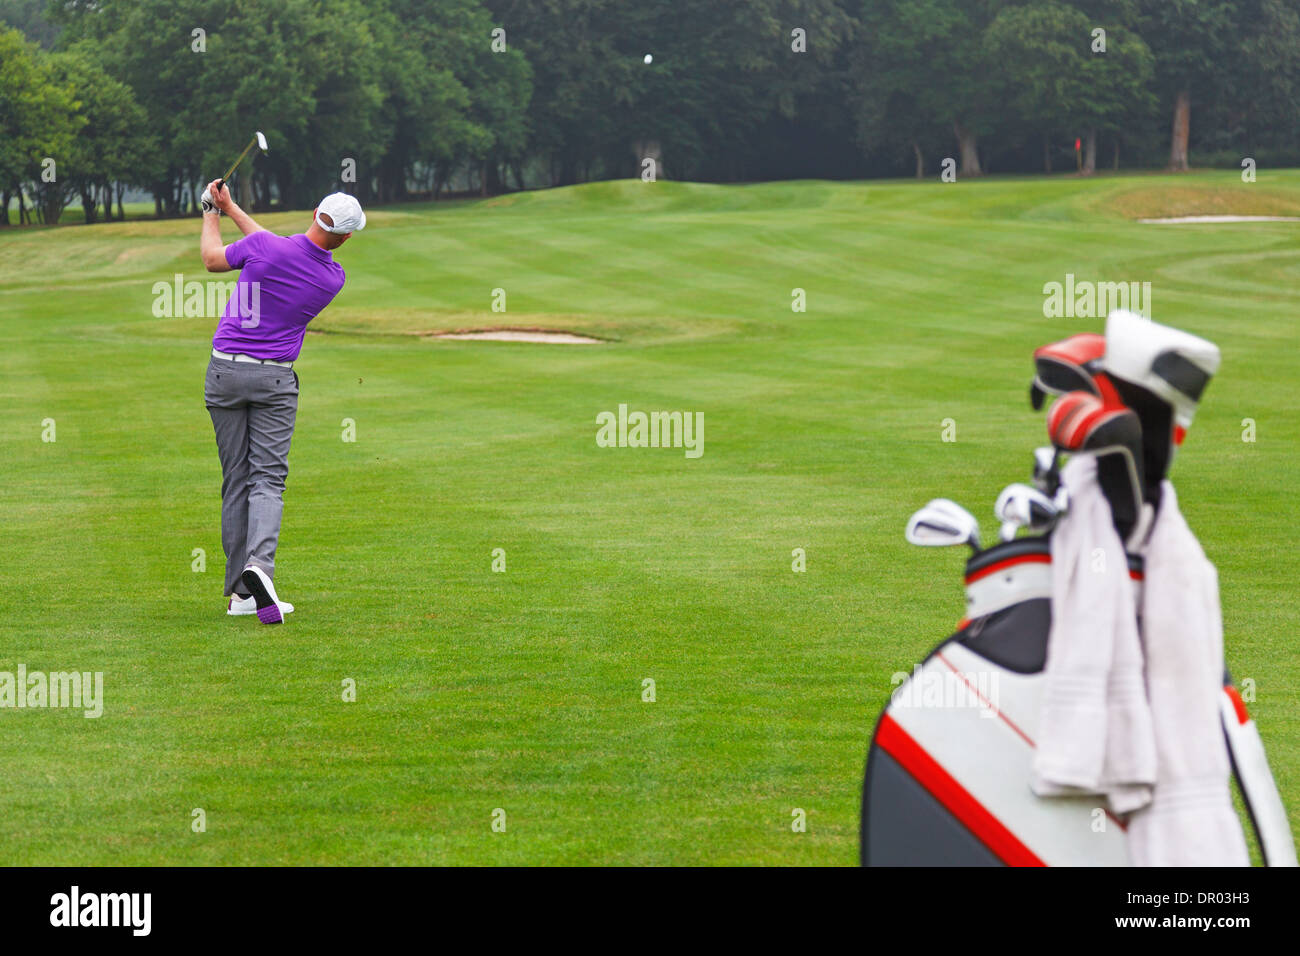 A golfer playing a mid iron fairway shot into the green on a par 4 hole, series of 3. Focus is on the golfer. - Stock Image